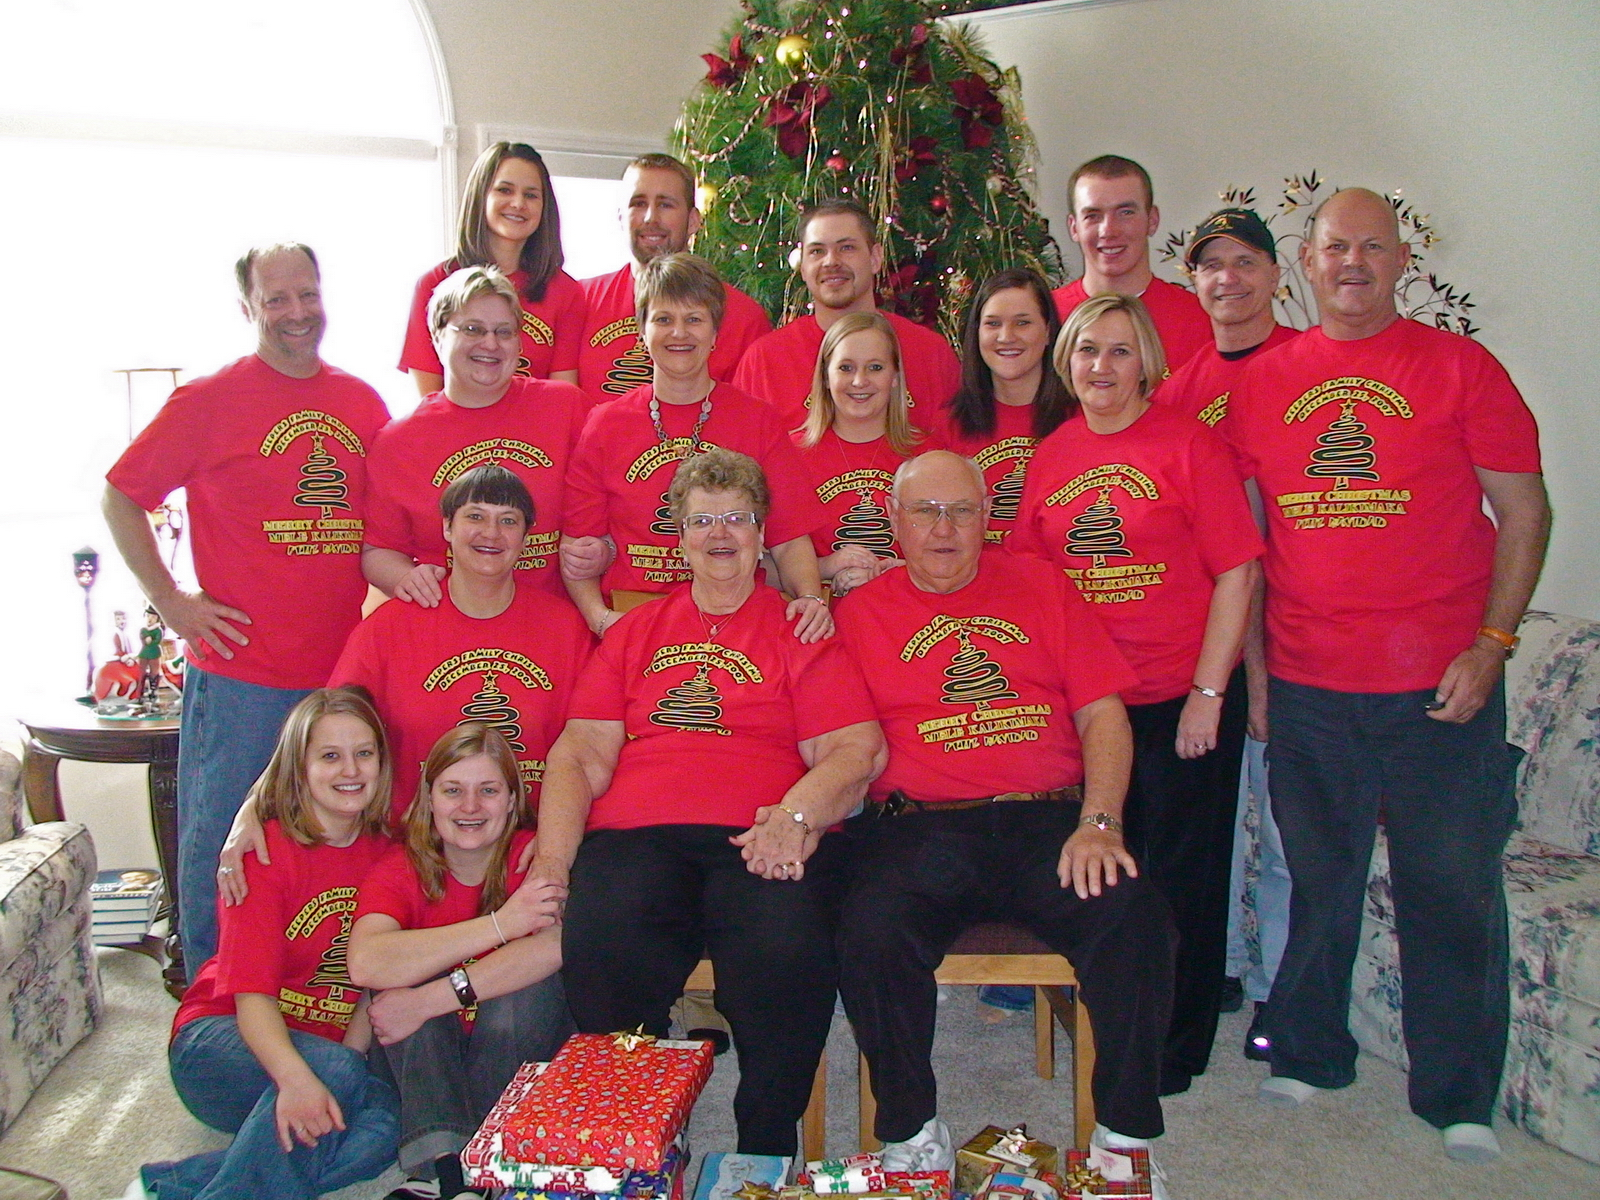 Keepers Family Christmas 2007 T Shirt Photo